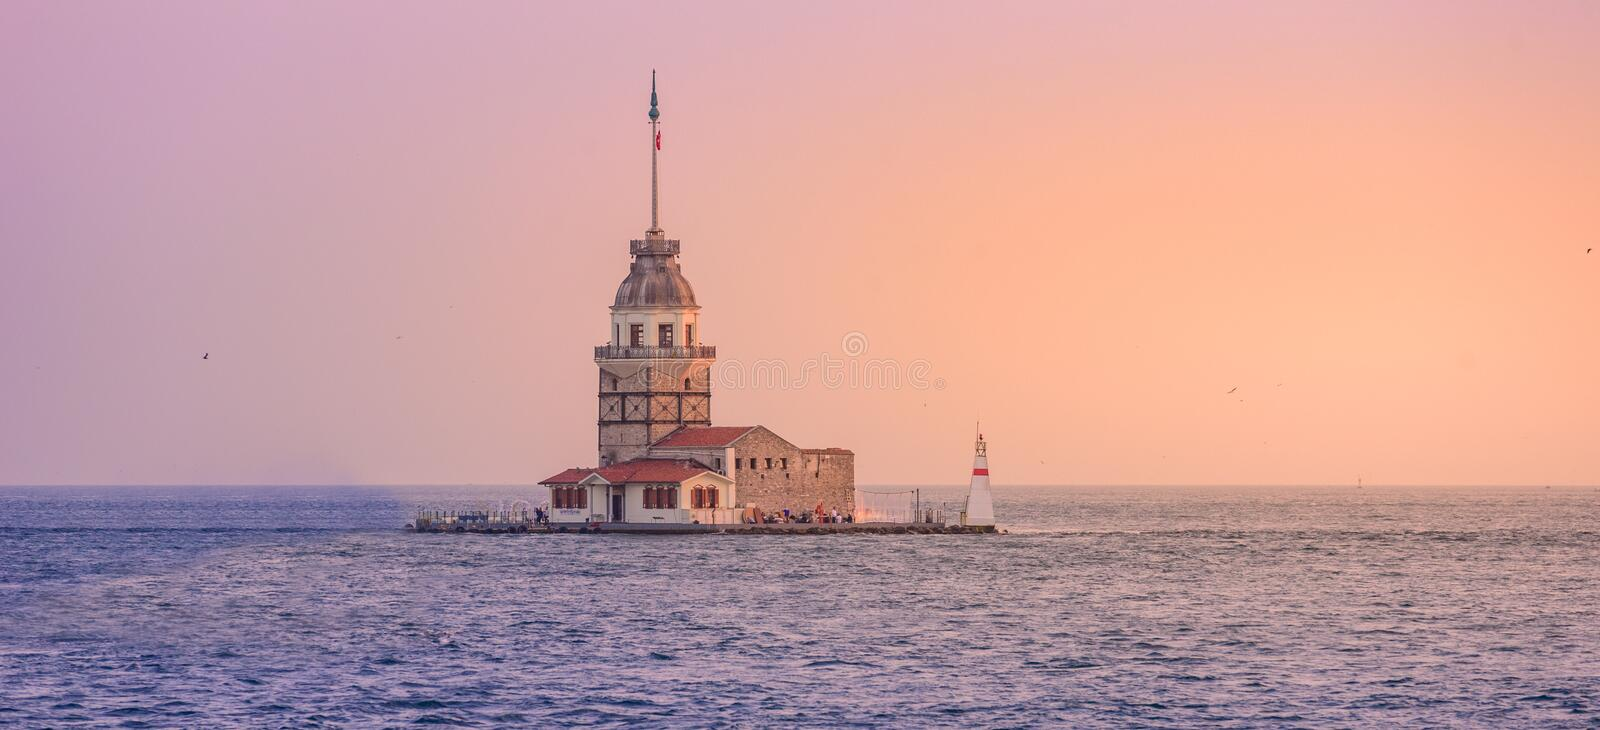 Maiden's Tower (also known as Leander's Tower or Kiz Kulesi) on the Bosphorus in Istanbul at sunset , Turkey stock image